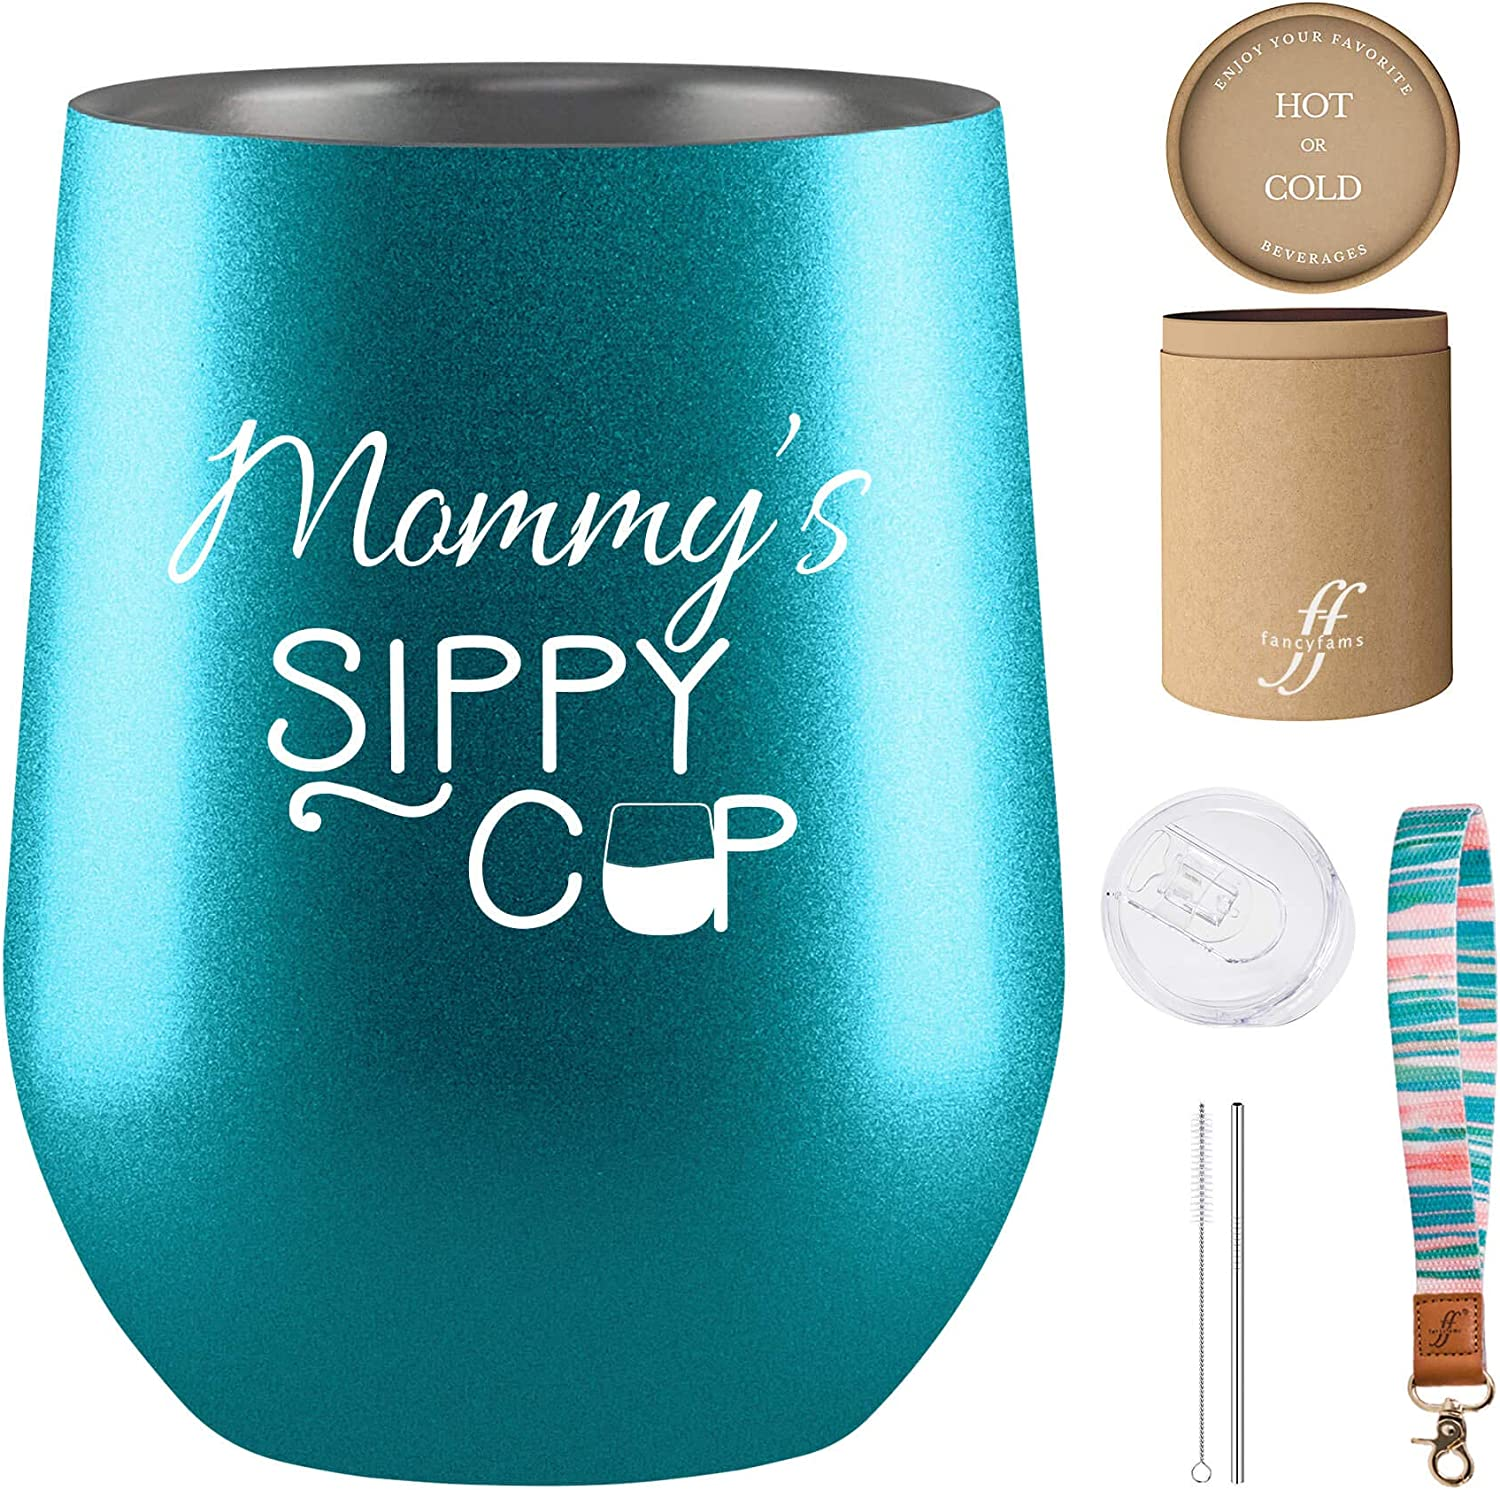 Mommy's Sippy Cup Wine Tumbler - Fancyfams - 12 oz White Stainless Steel Vacuum Insulated Wine Tumbler with Lid and Straw, Mom Gifts, Mothers Day Gifts, Mom Birthday Gifts, Mom Wine Glass (Turquoise)